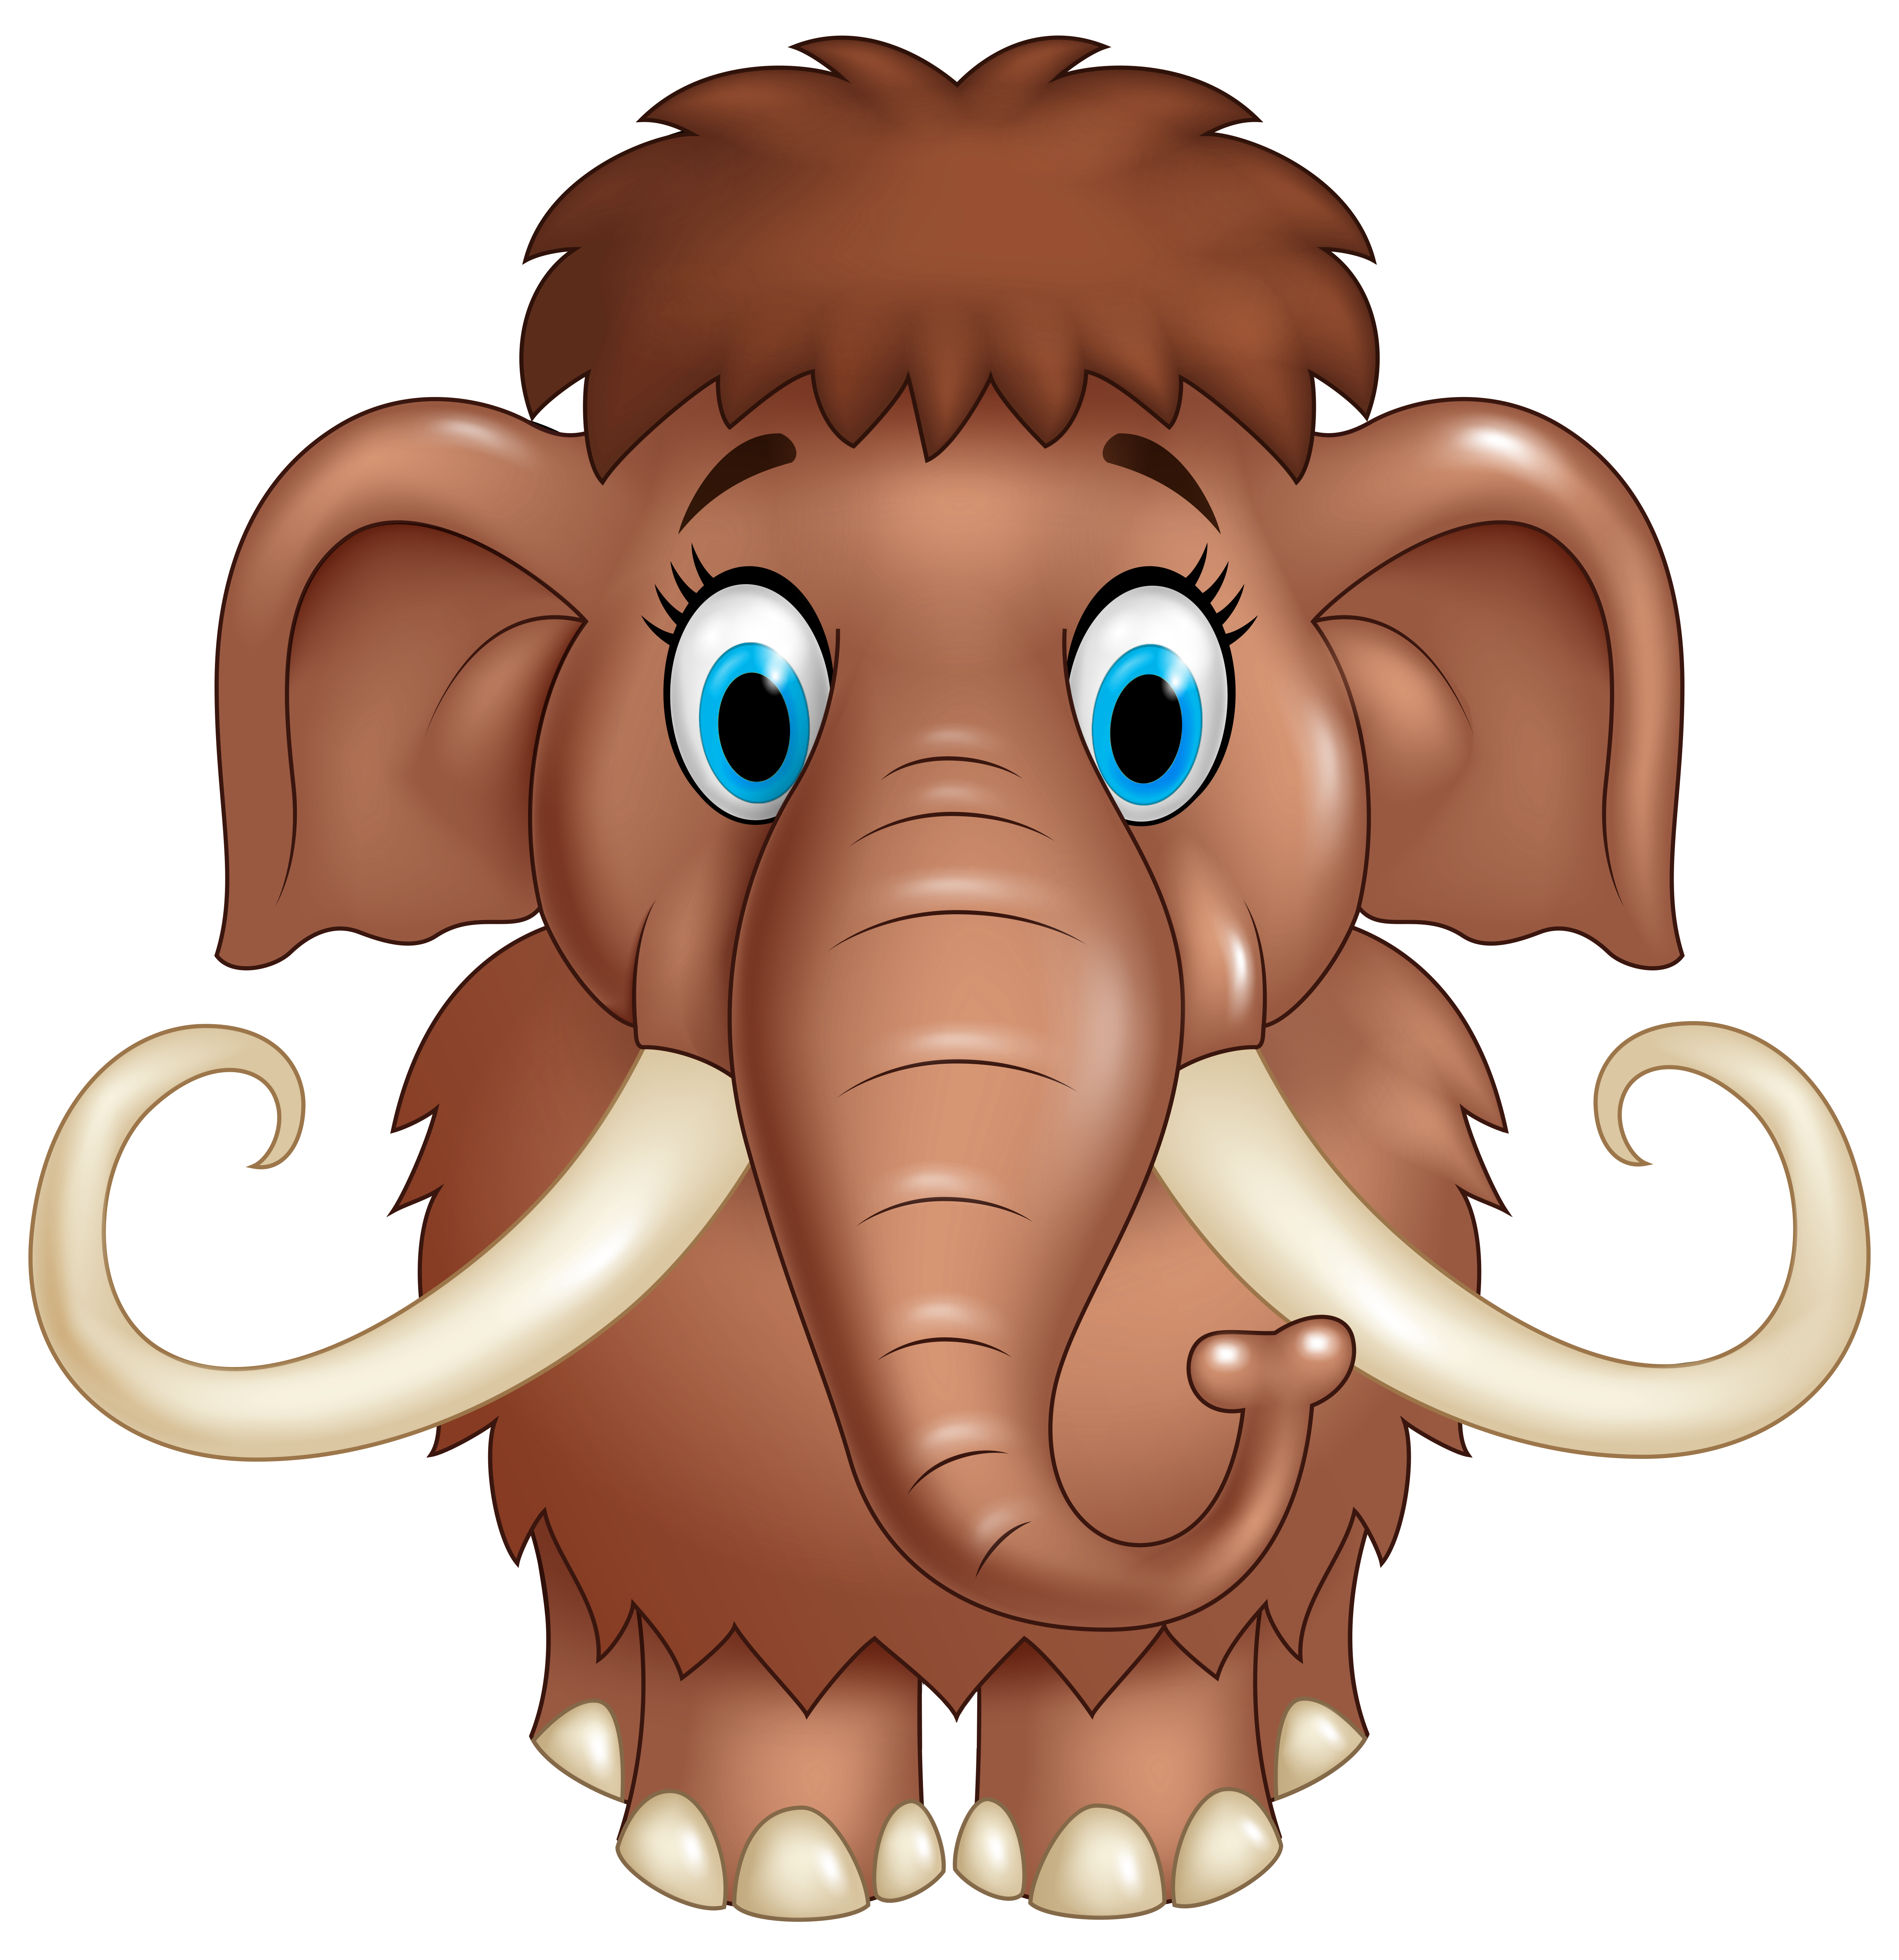 Animals cartoon png. Cute mammoth clipart image